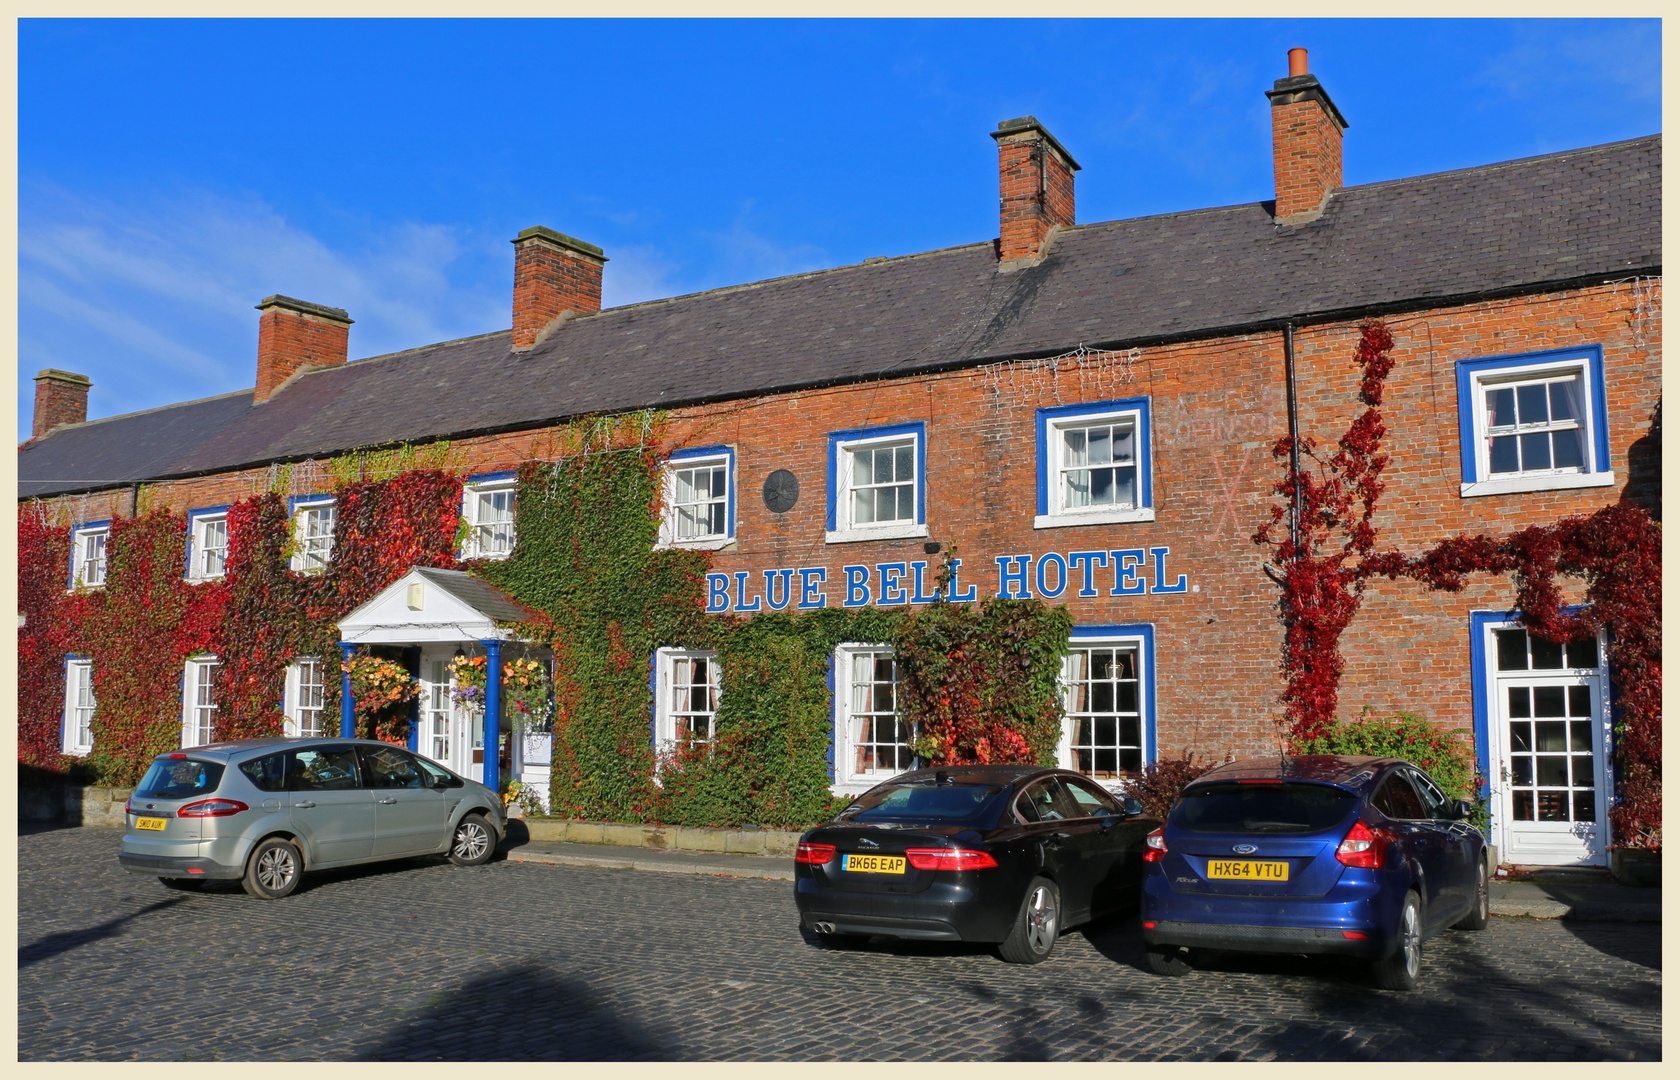 Blue bell hotel belford Northumberland